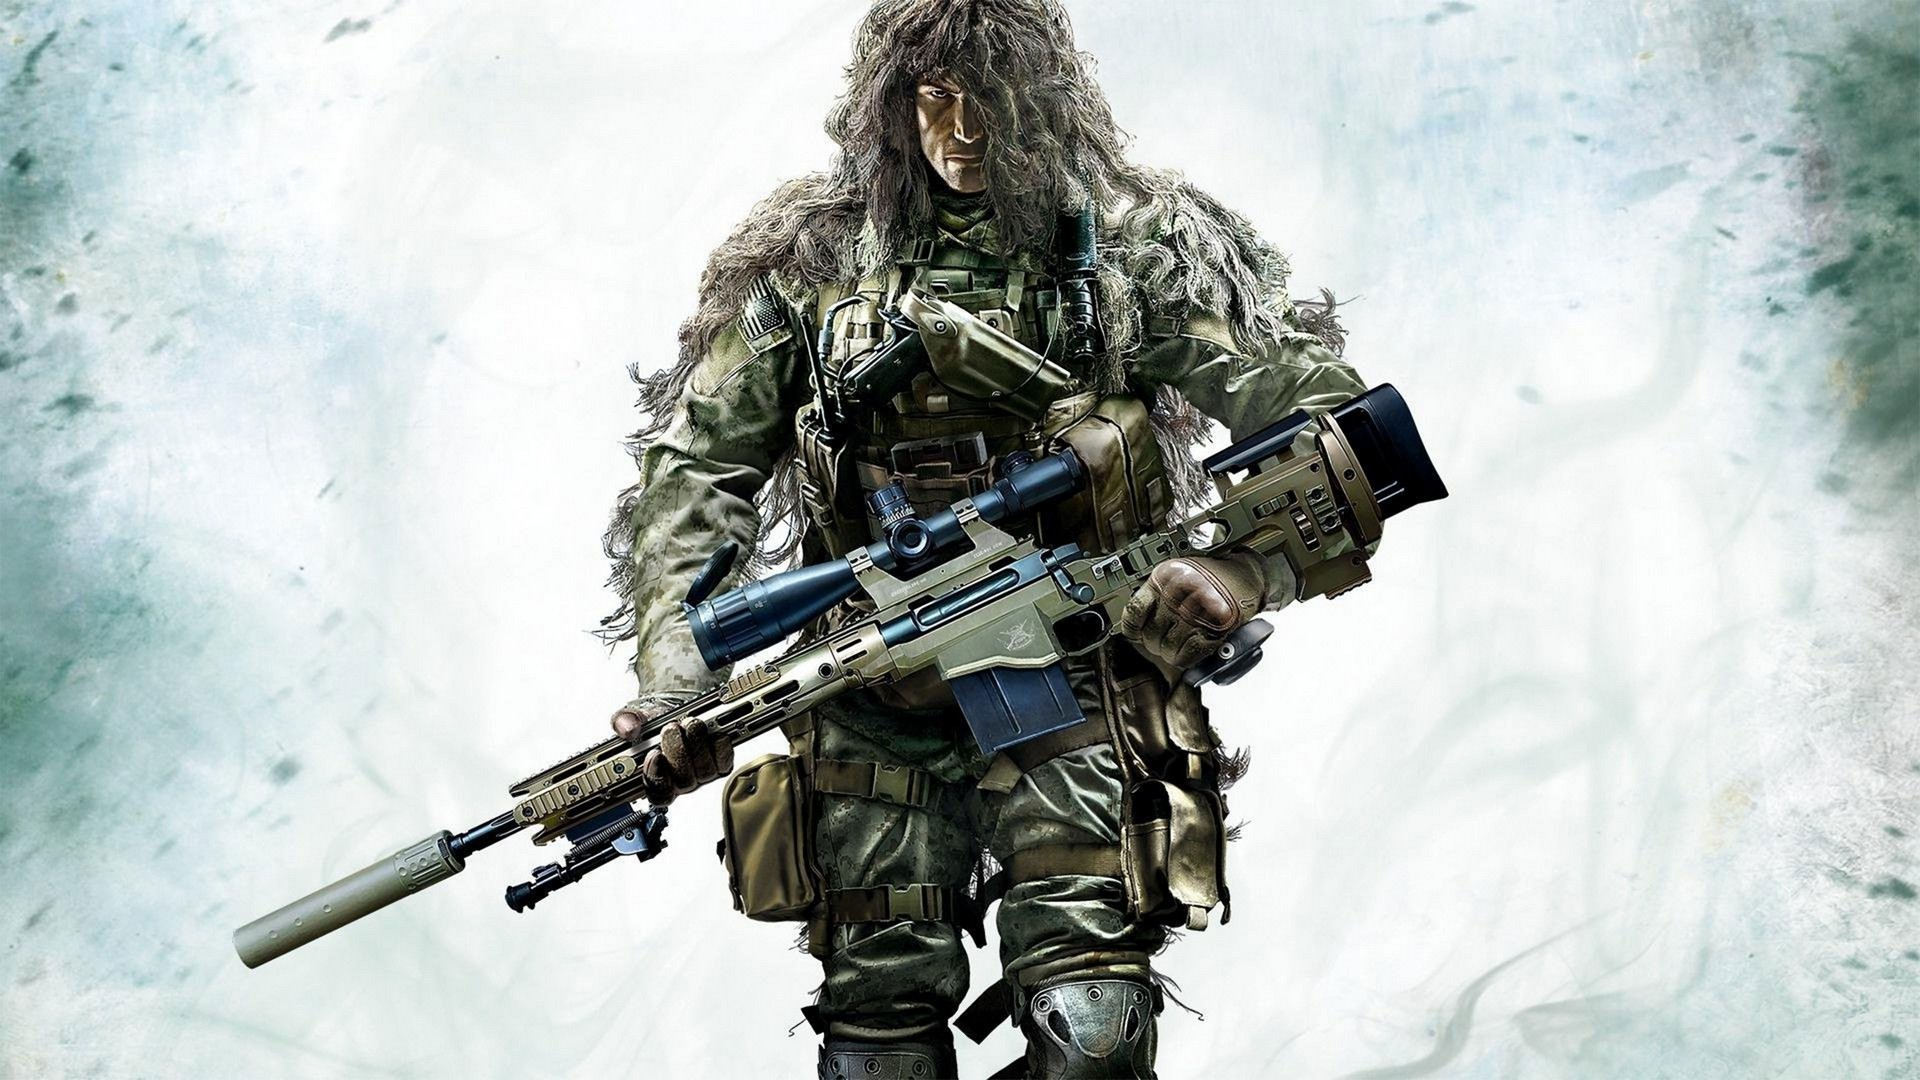 Sniper ghost warrior 3 clipart royalty free stock Download (32+) sniper ghost warrior 3 wallpapers royalty free stock